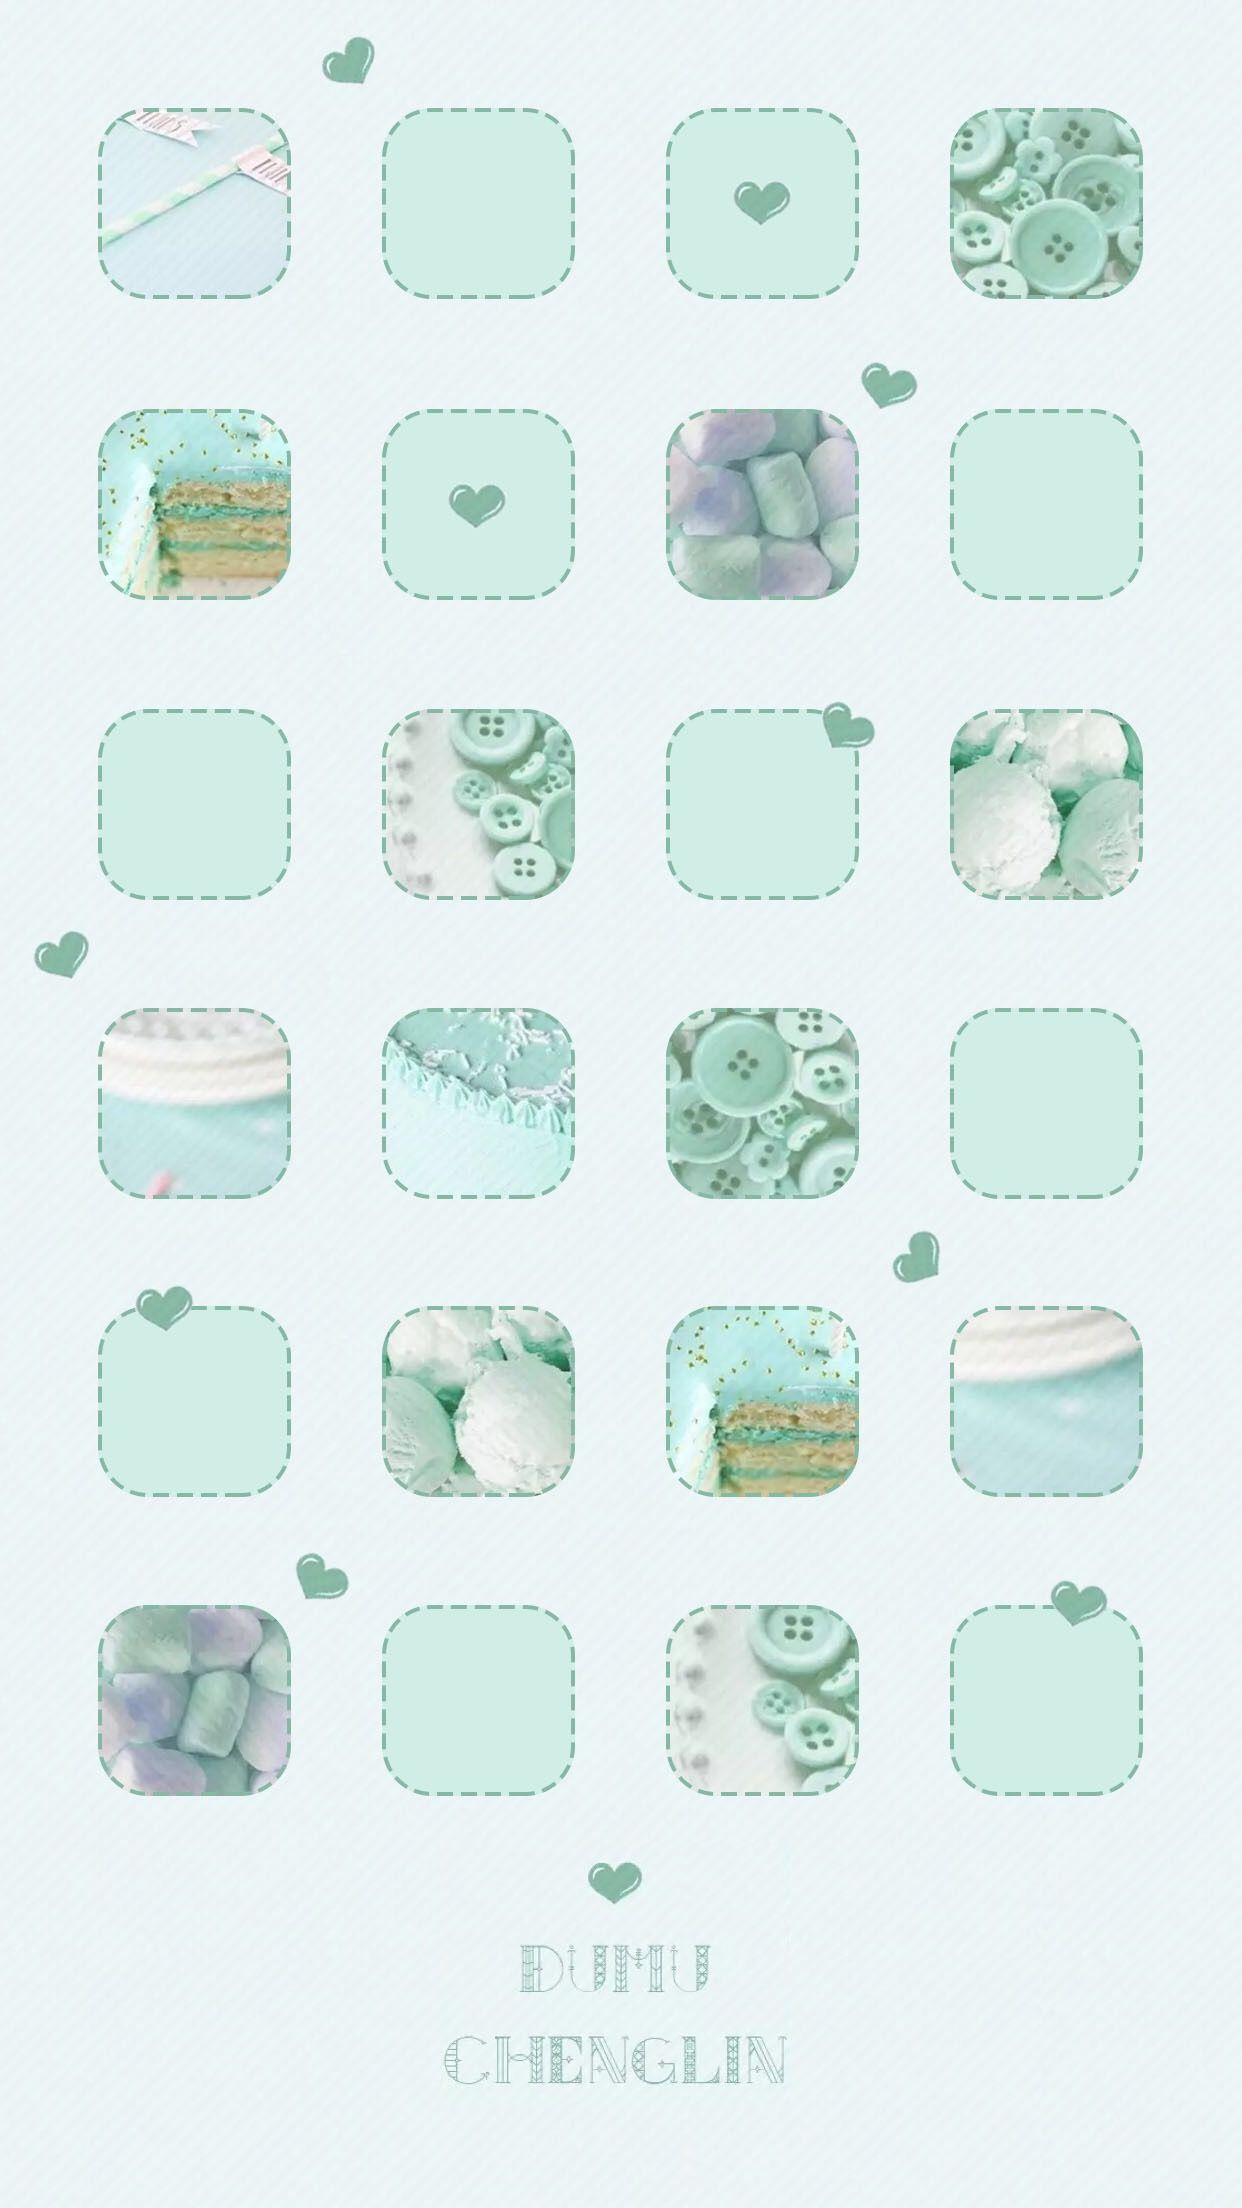 Pin By Beverly Hernandez On Iphone Wallpapers Homescreen